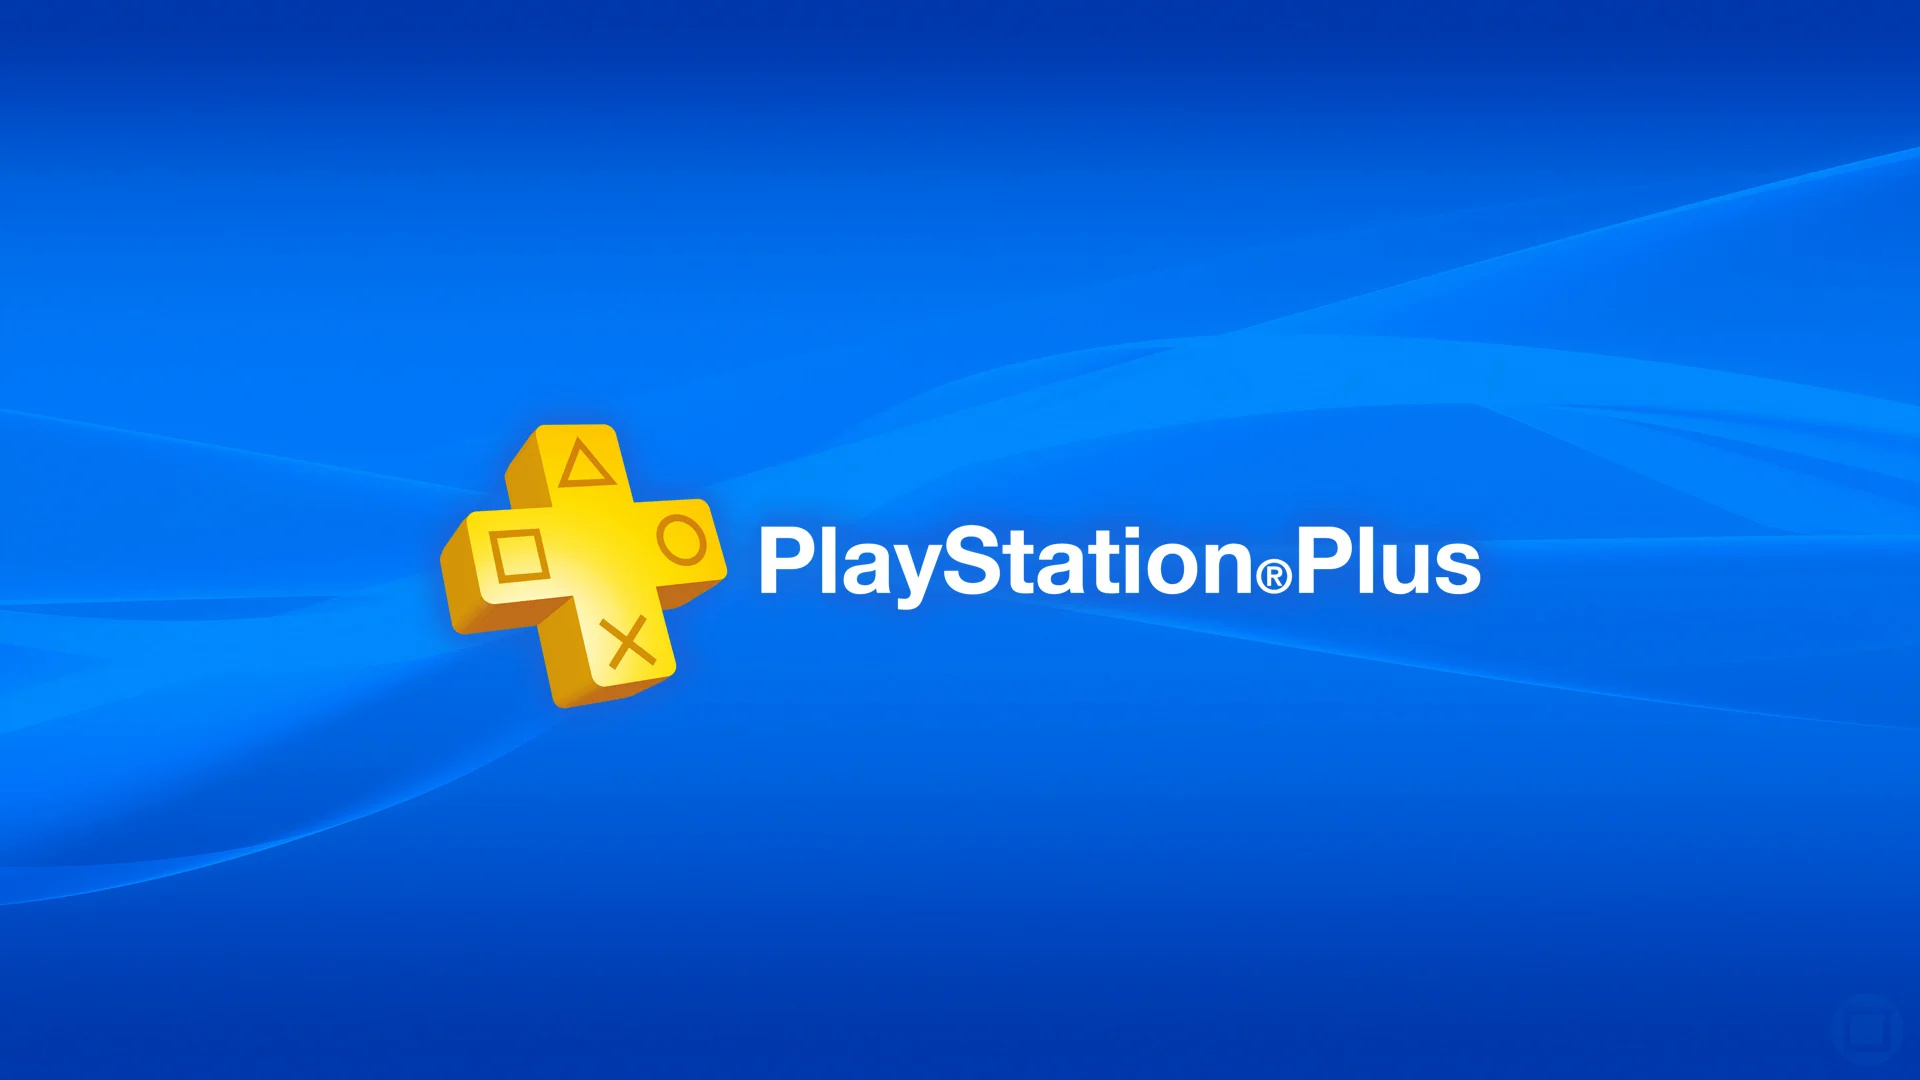 ps5 guide ps plus.original - How To Get Free Ps Plus After 7 Times